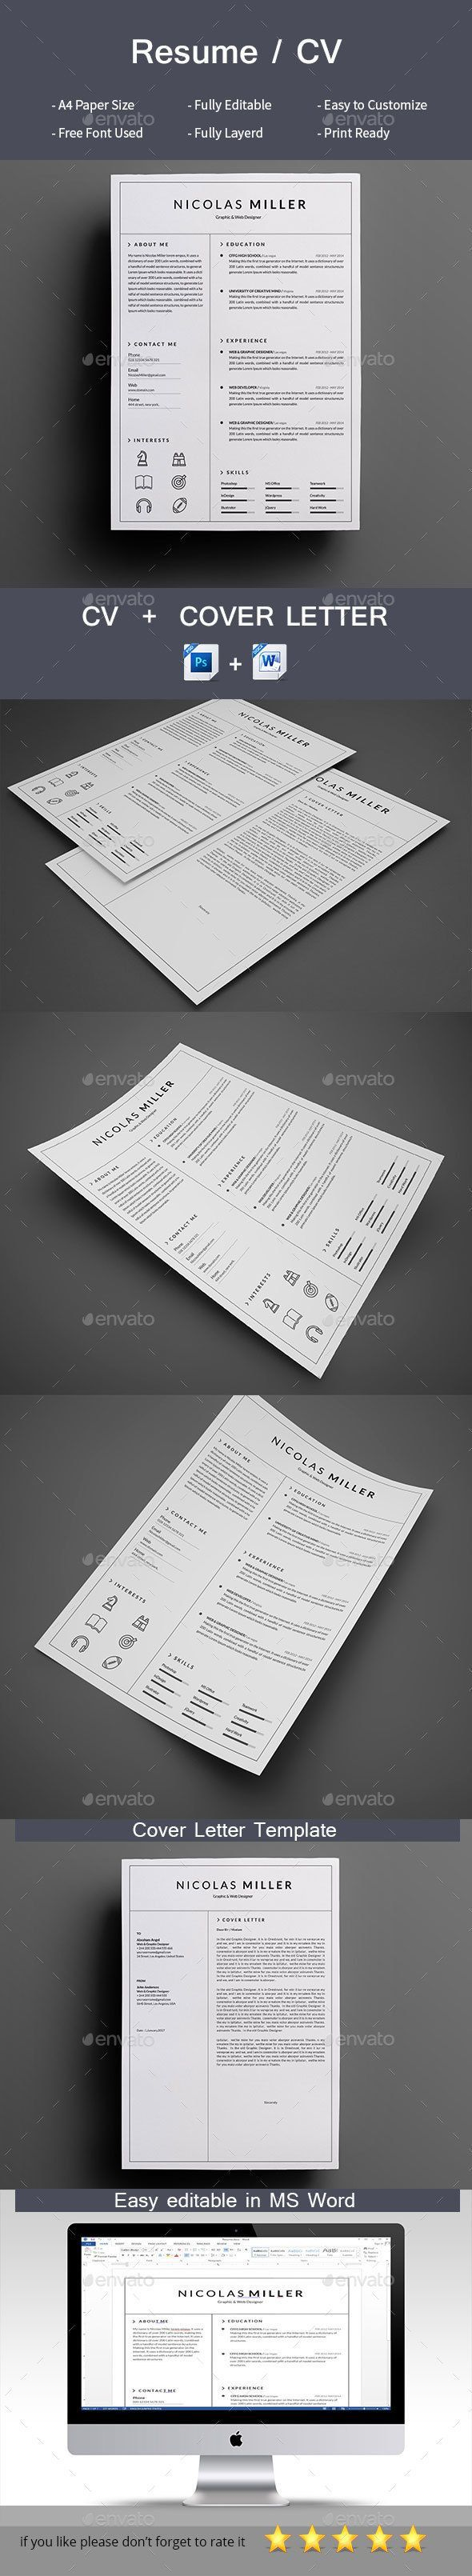 Clean Resume — Photoshop PSD #cv #simple resume • Download ➝ https://graphicriver.net/item/clean-resume/19255752?ref=pxcr